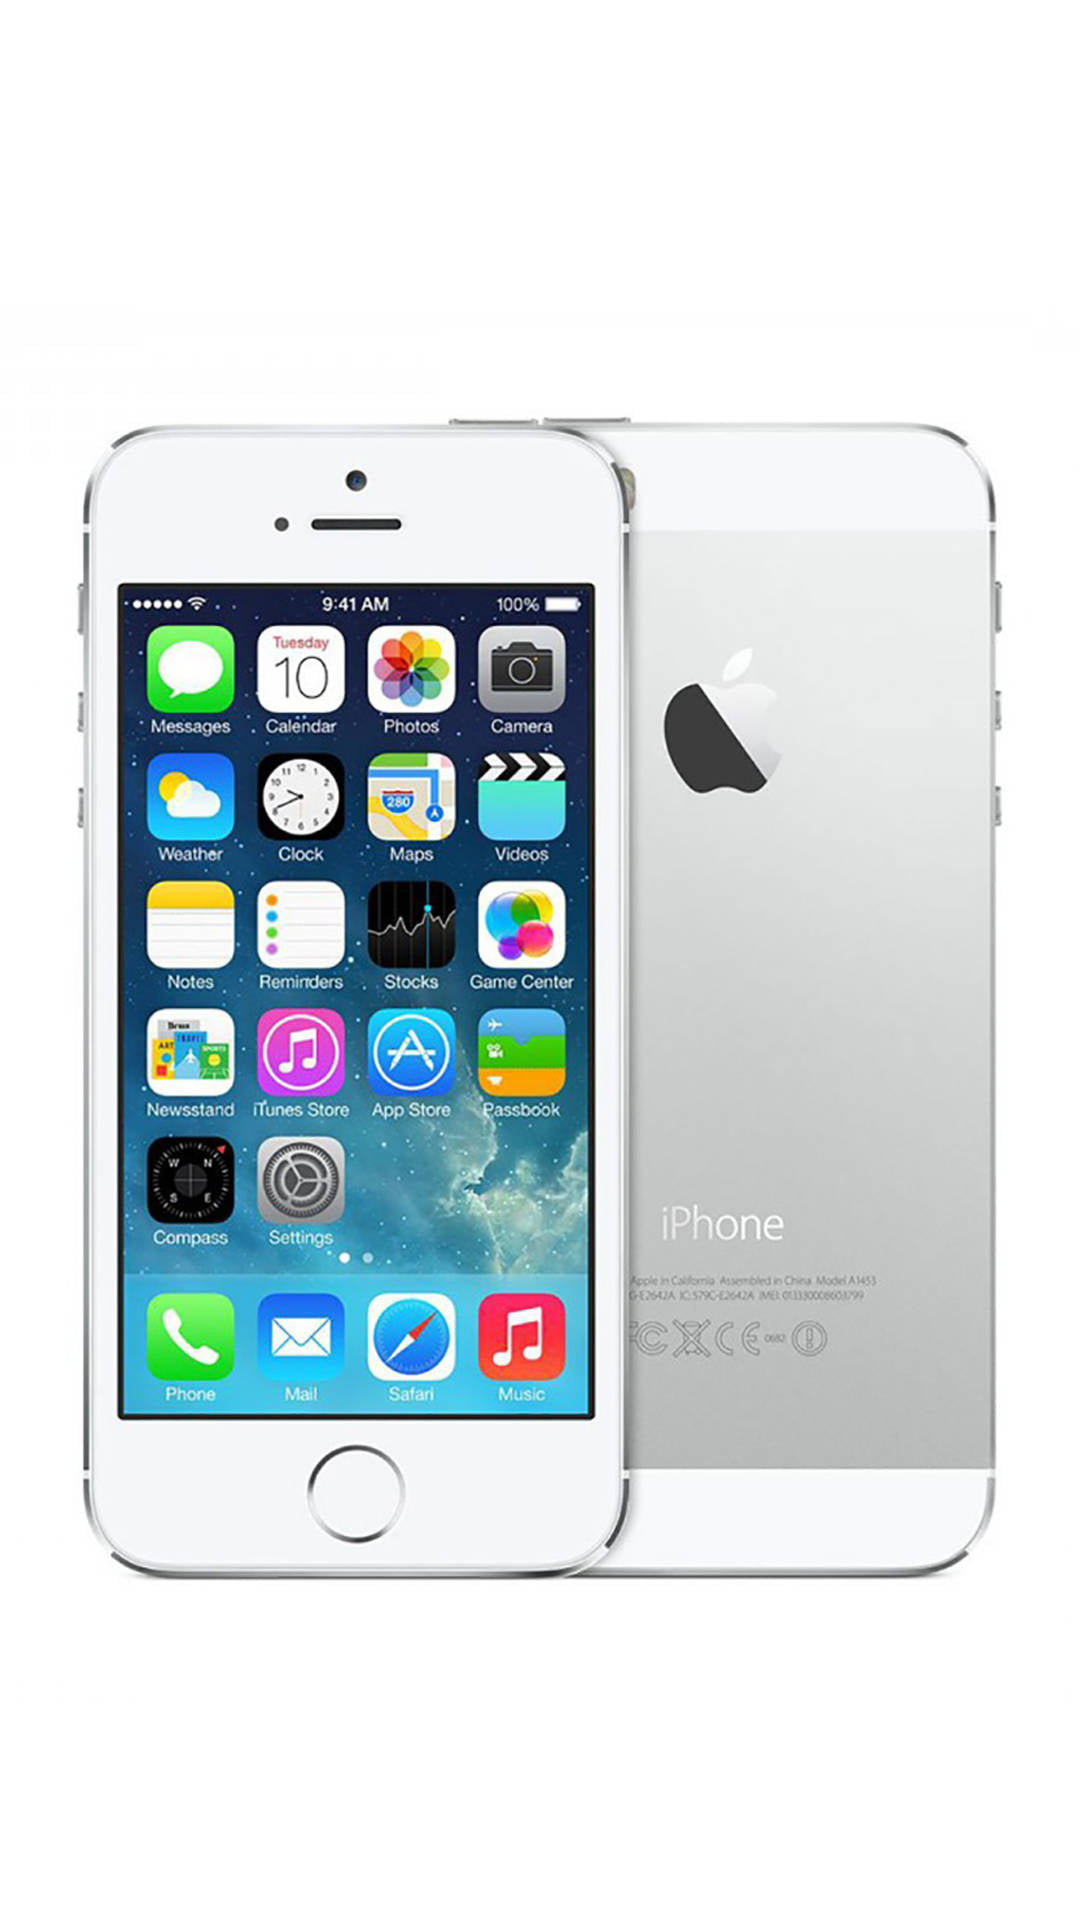 Ap apple iphone 5s space gray 32gb - Apple Iphone 5s 32gb Unlocked Gsm 4g Lte Dual Core Phone W 8mp Camera Silver Certified Refurbished Walmart Com